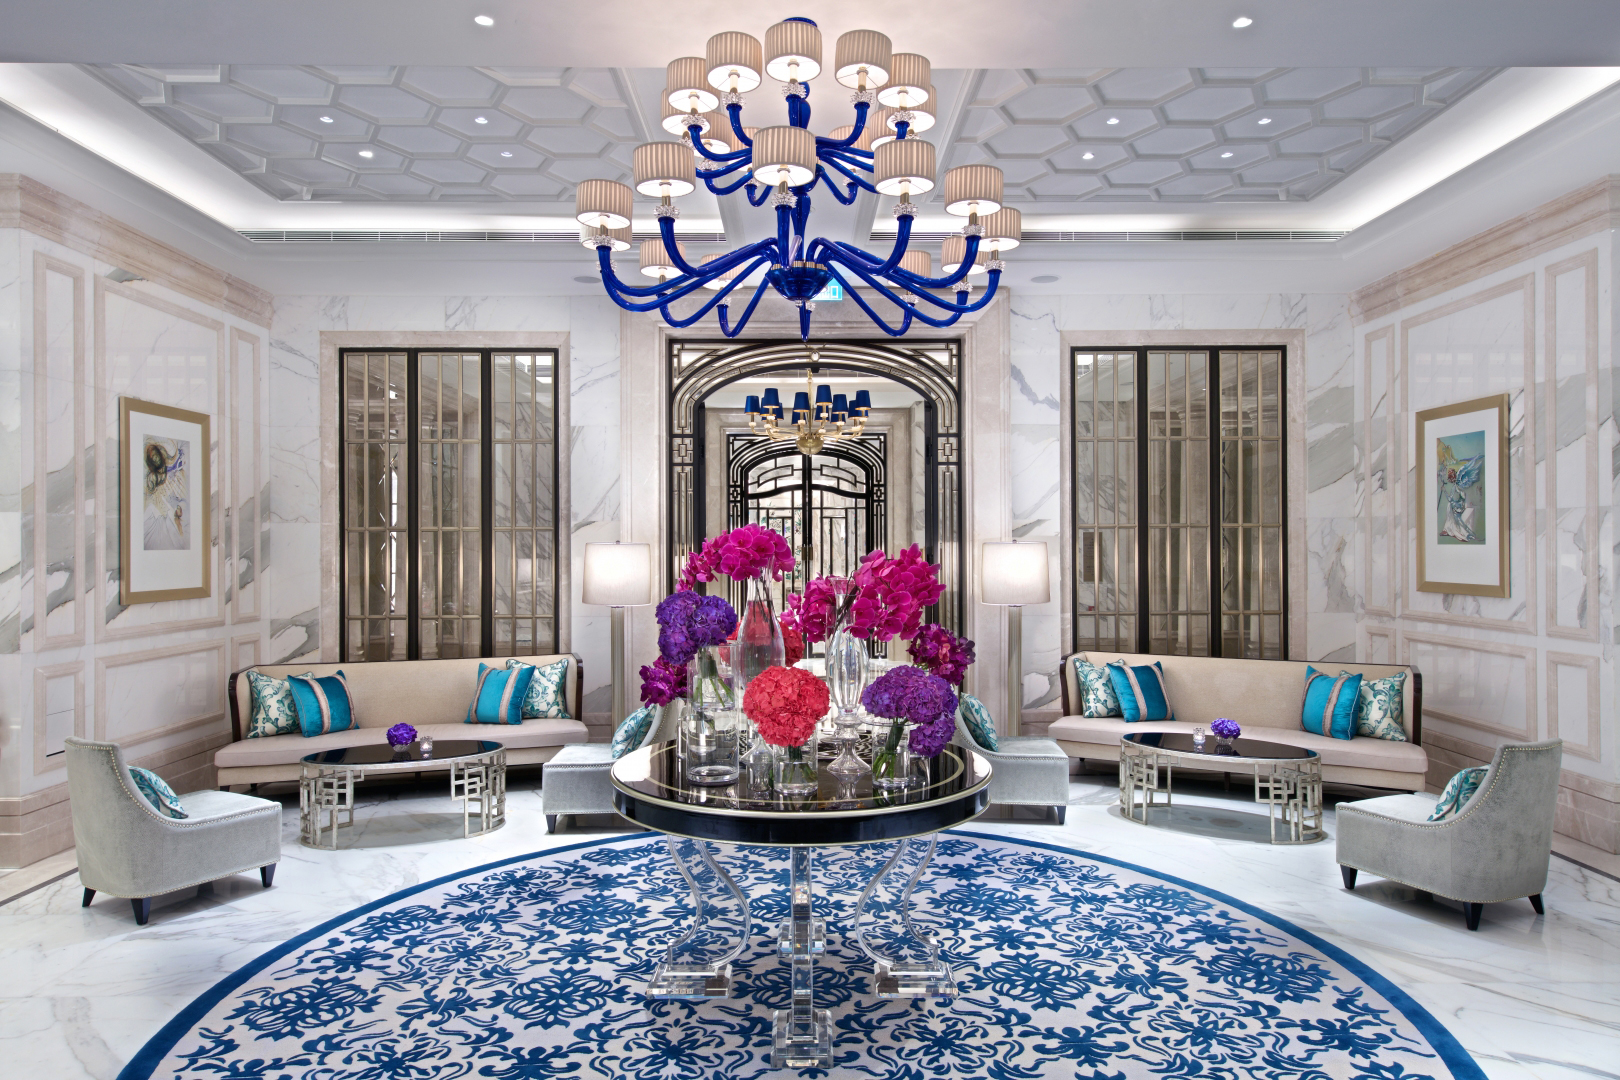 Top Interior Design Companies Captivating Hospitality Giants 2016 Research Decorating Inspiration